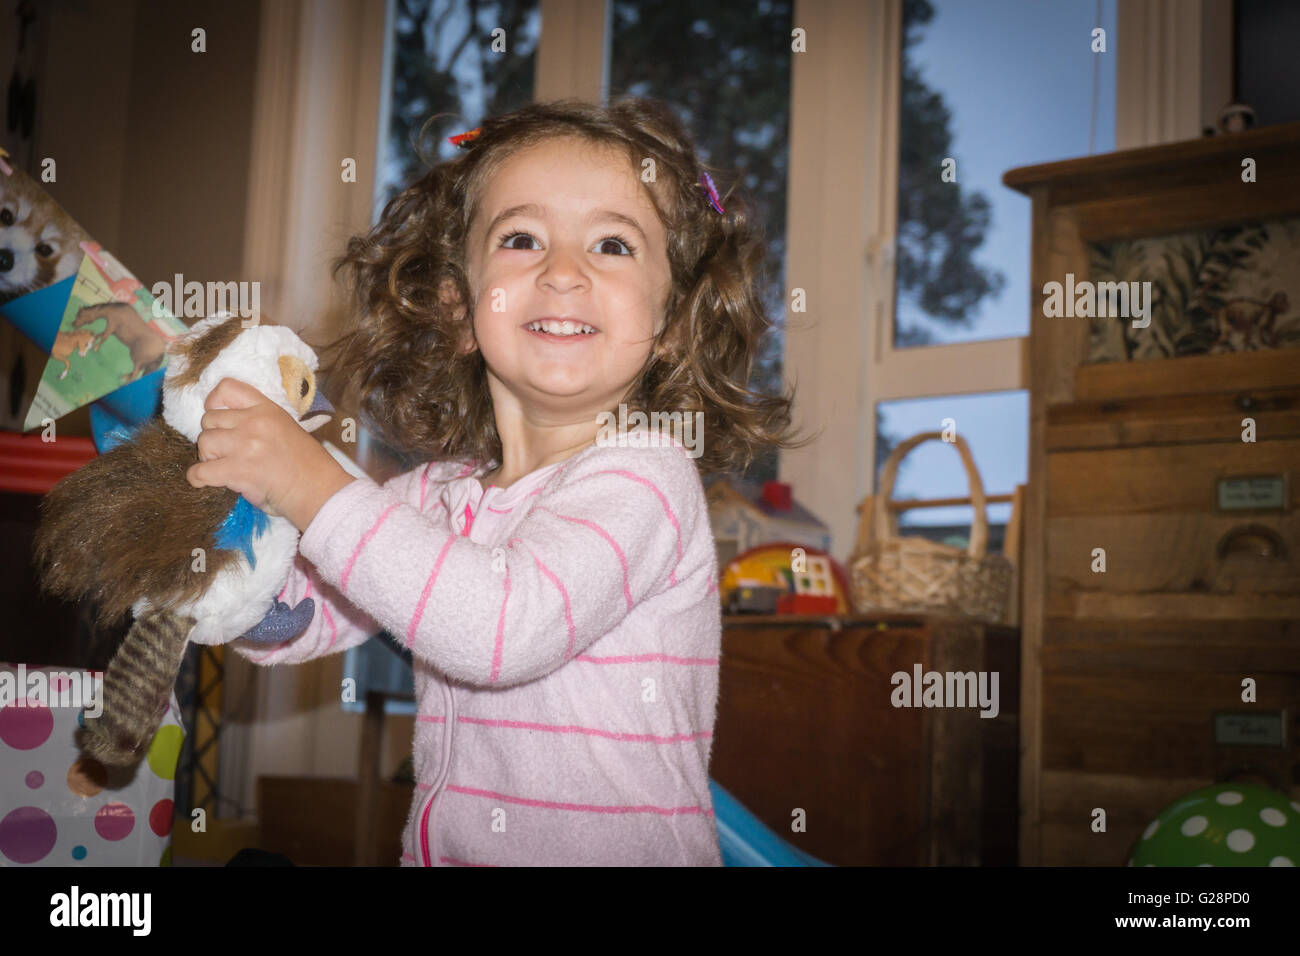 Birthday morning two year girl old still in pajamas in lounge happily clutches a soft toy bird present she has just - Stock Image